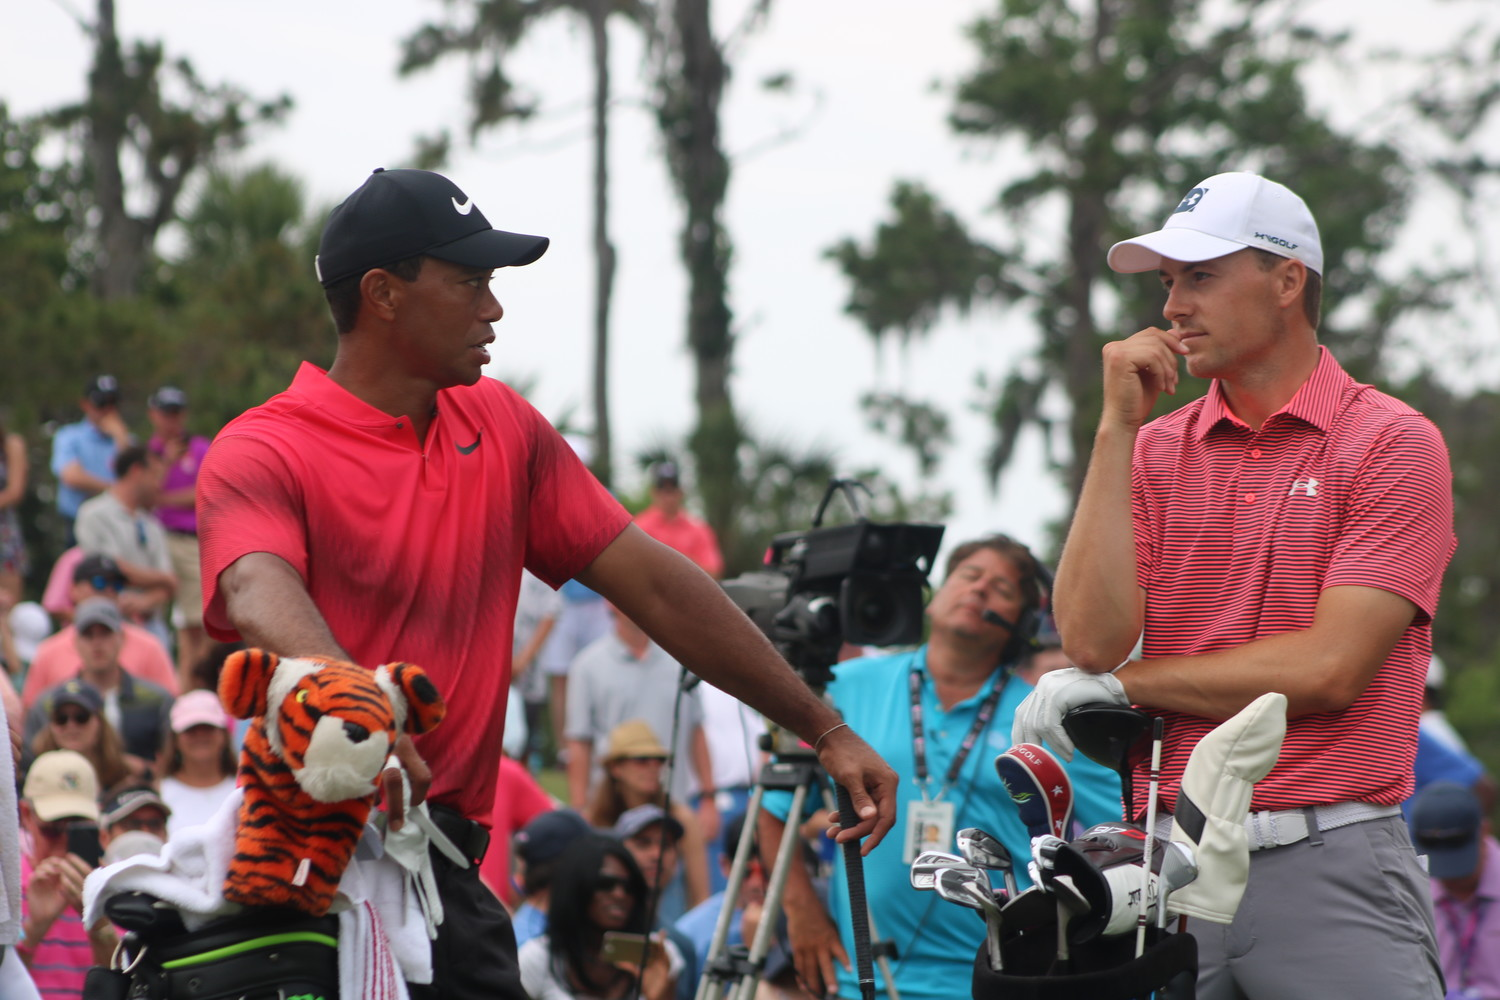 The Sunday pairing of Tiger Woods and Jordan Spieth presented fans with lots of excitement.